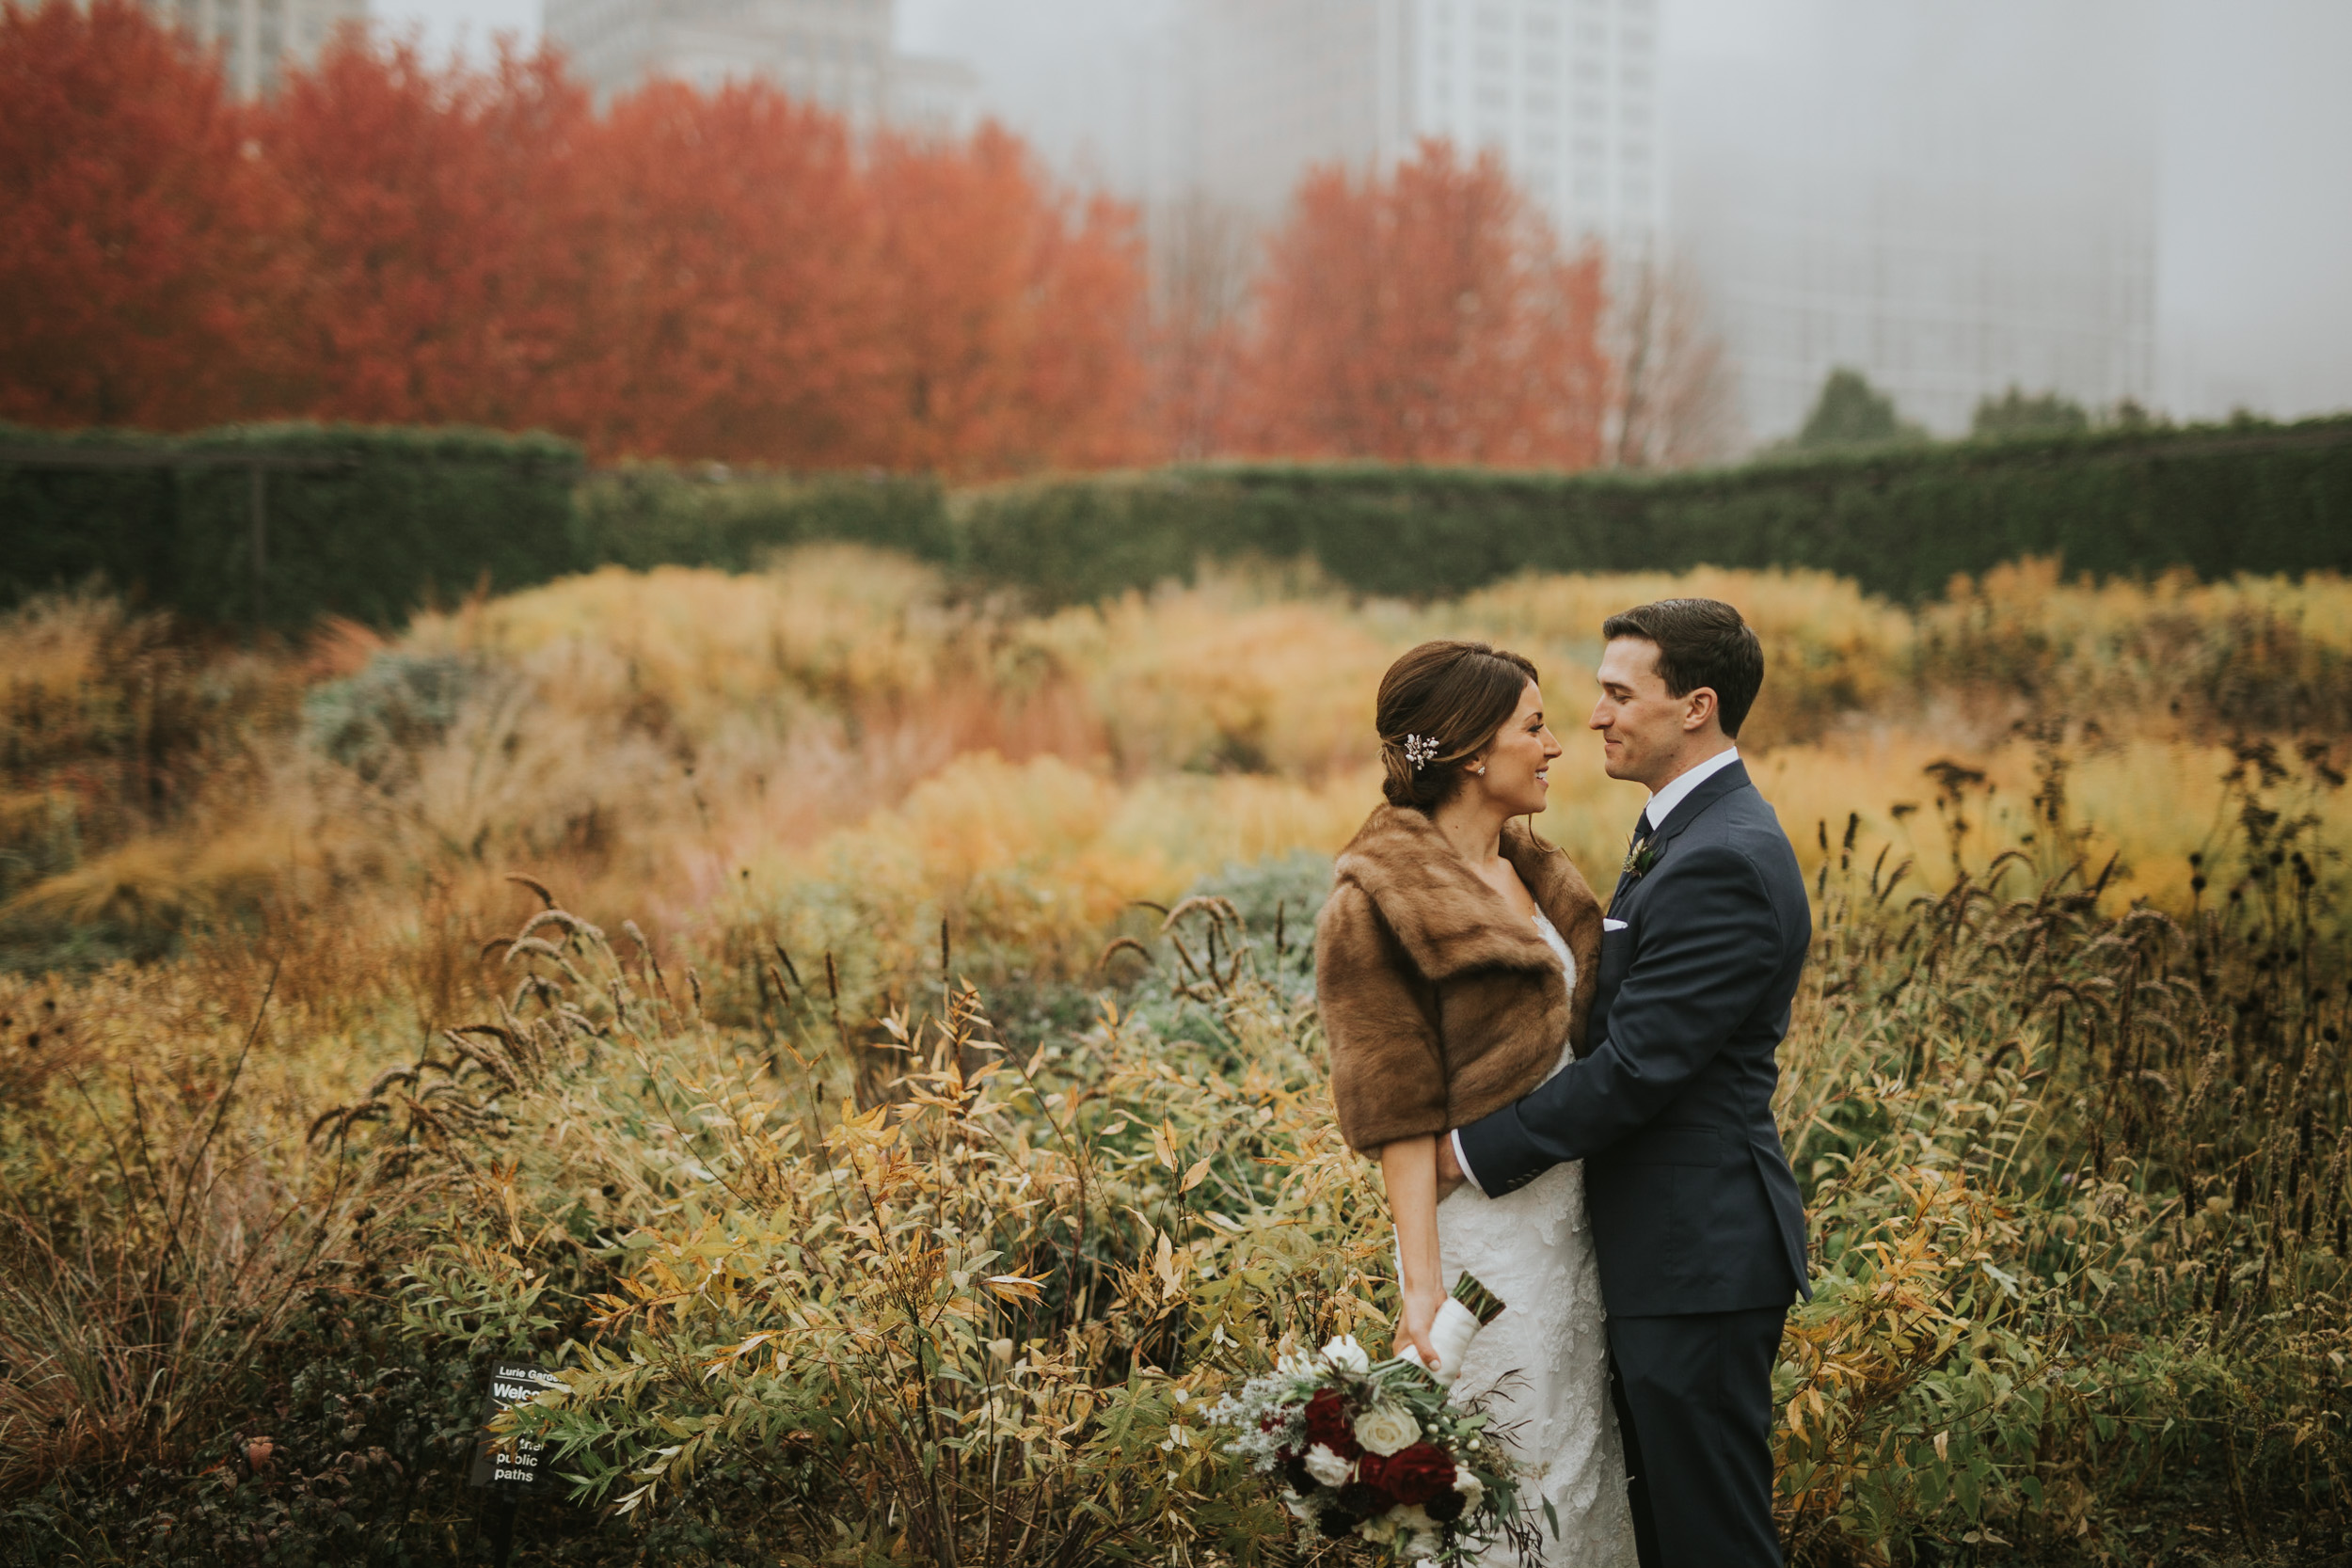 HaroldWashingtonLibraryWedding_Polly C Photography 1704154354.jpg